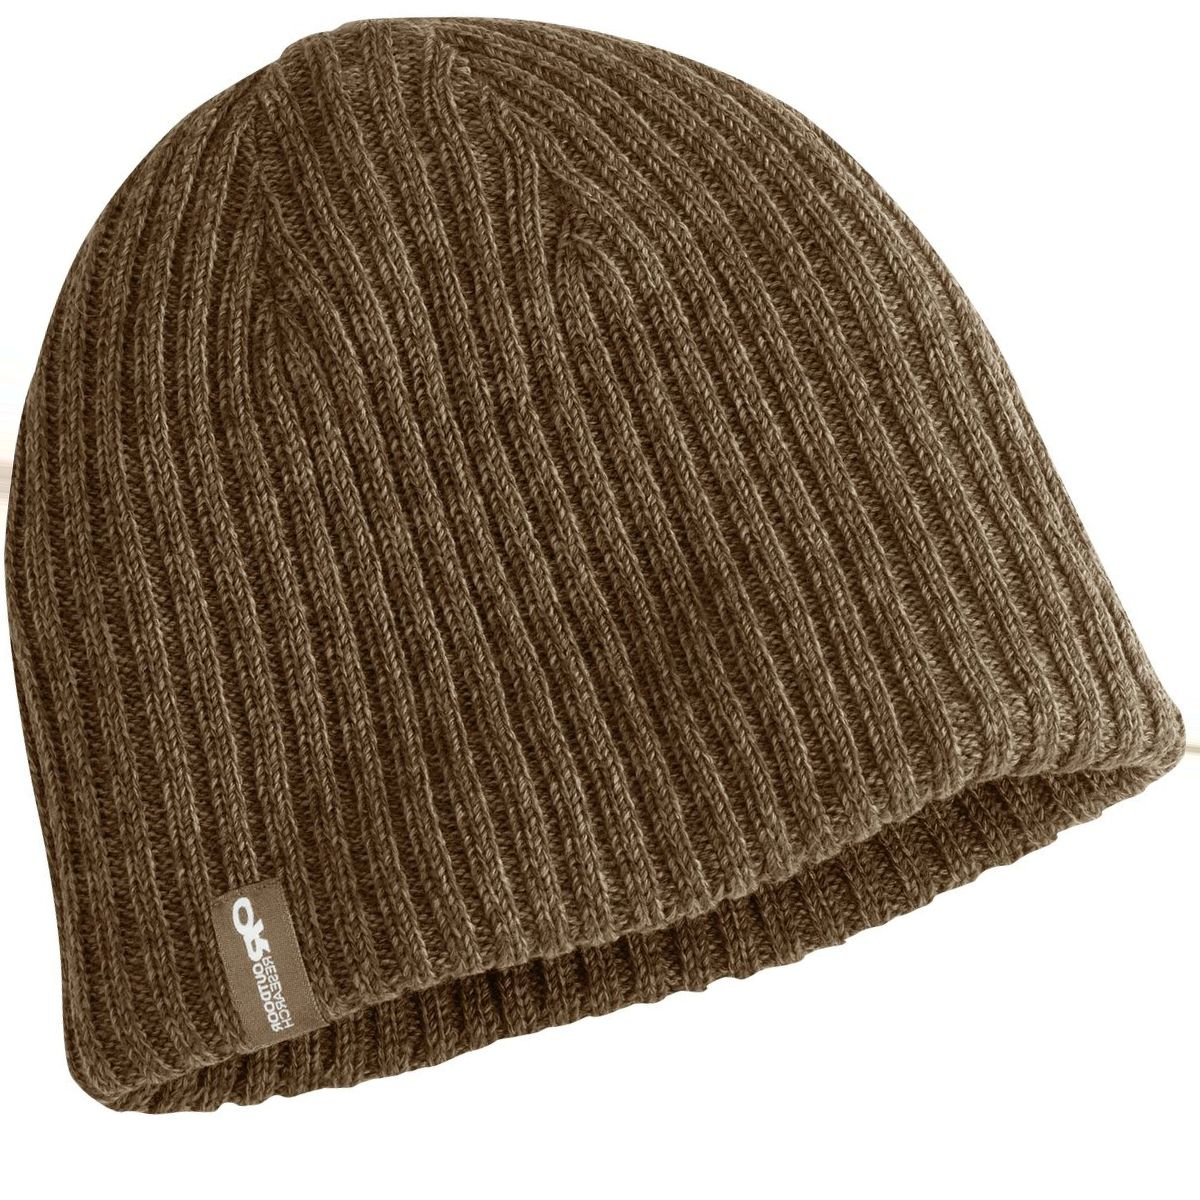 Outdoor Research Camber Beanie - Men's